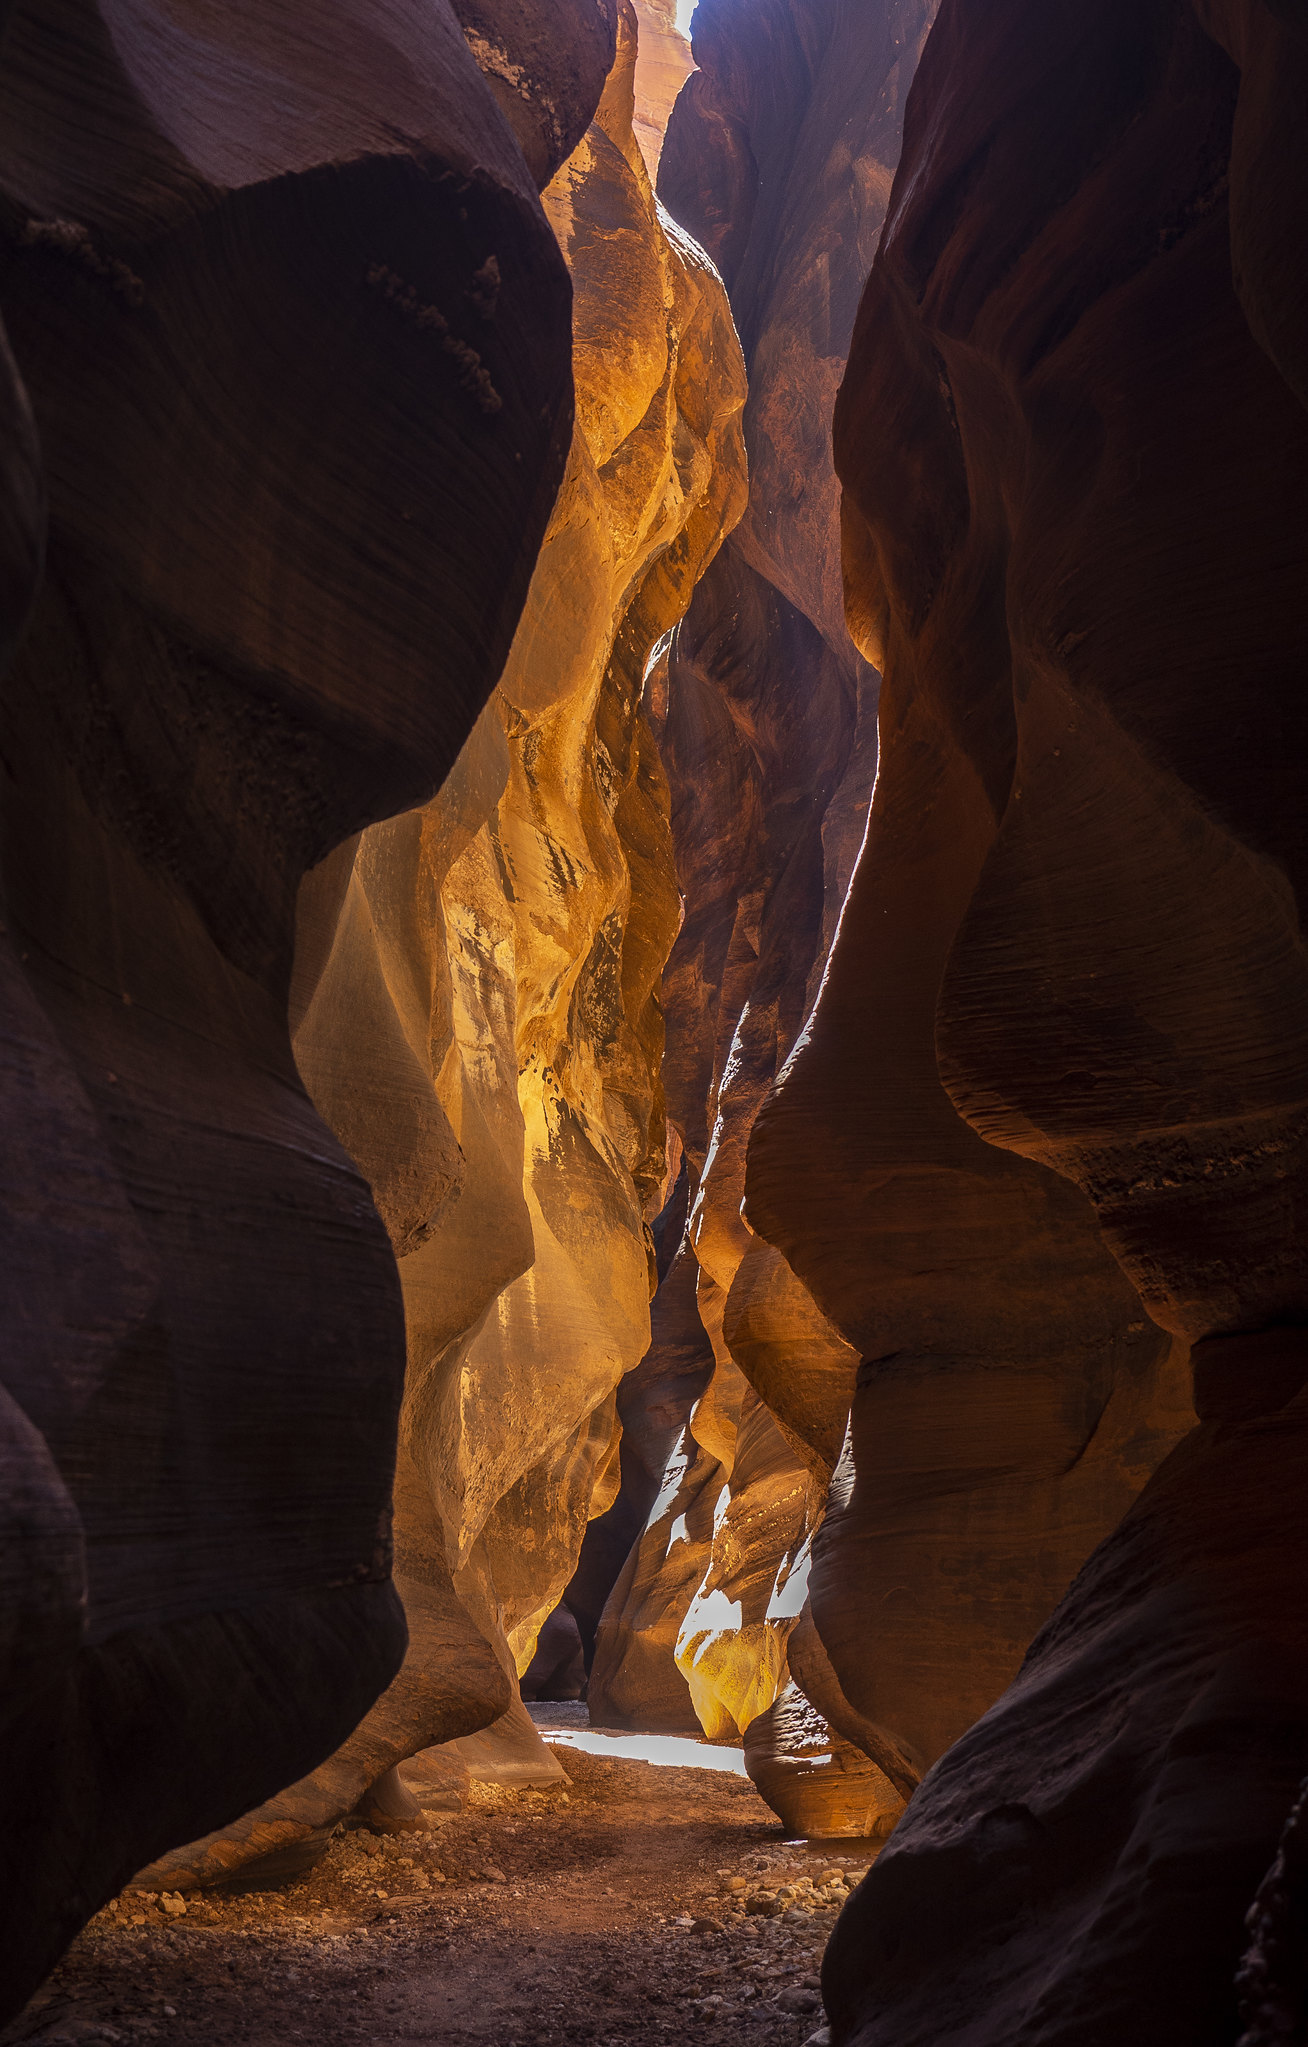 The fascinating light of Buckskin Gulch